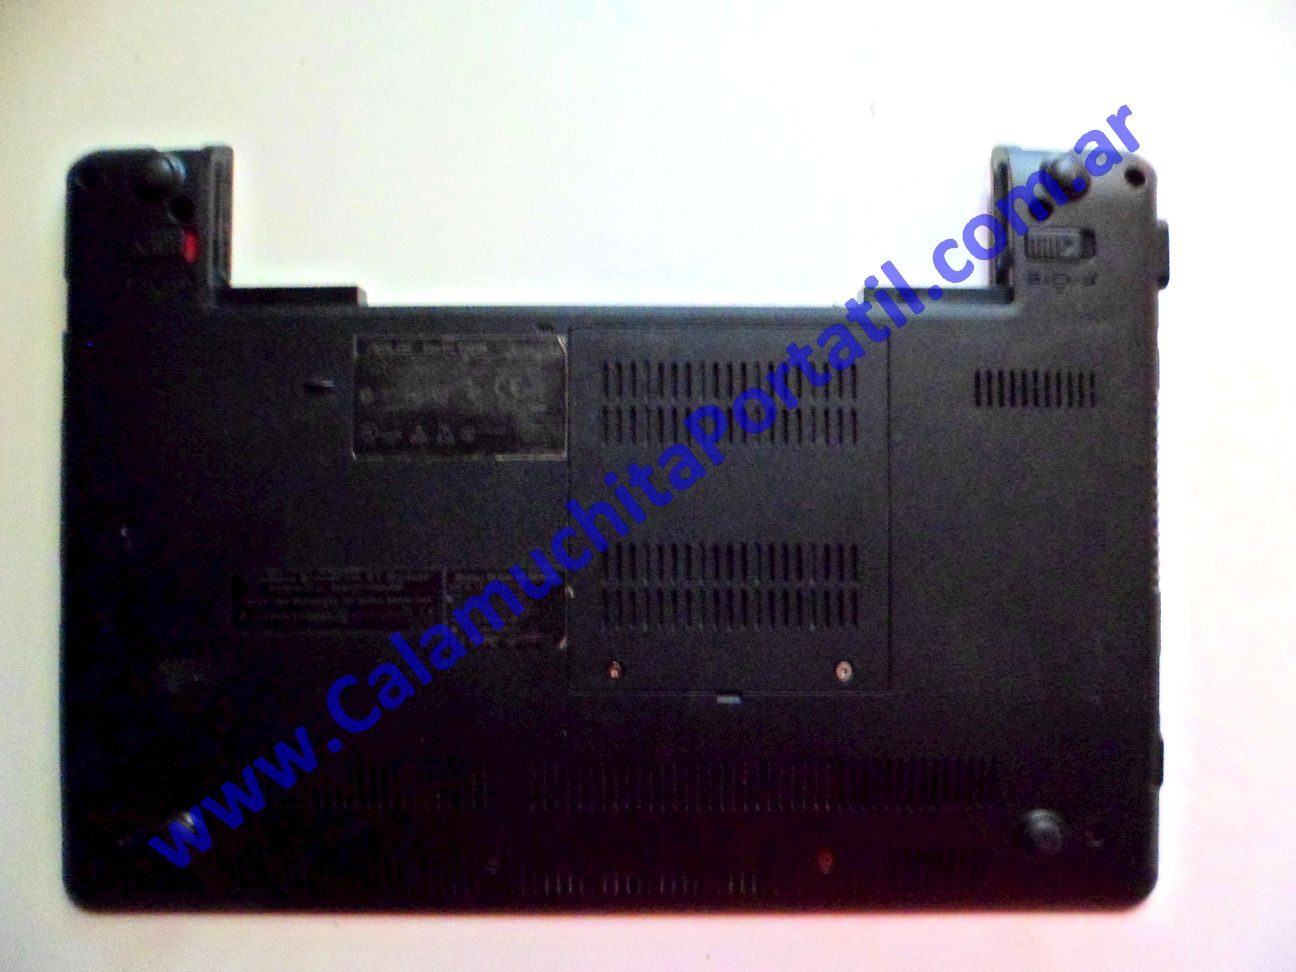 0027CAD Carcasa Base Asus Eee PC 1201n